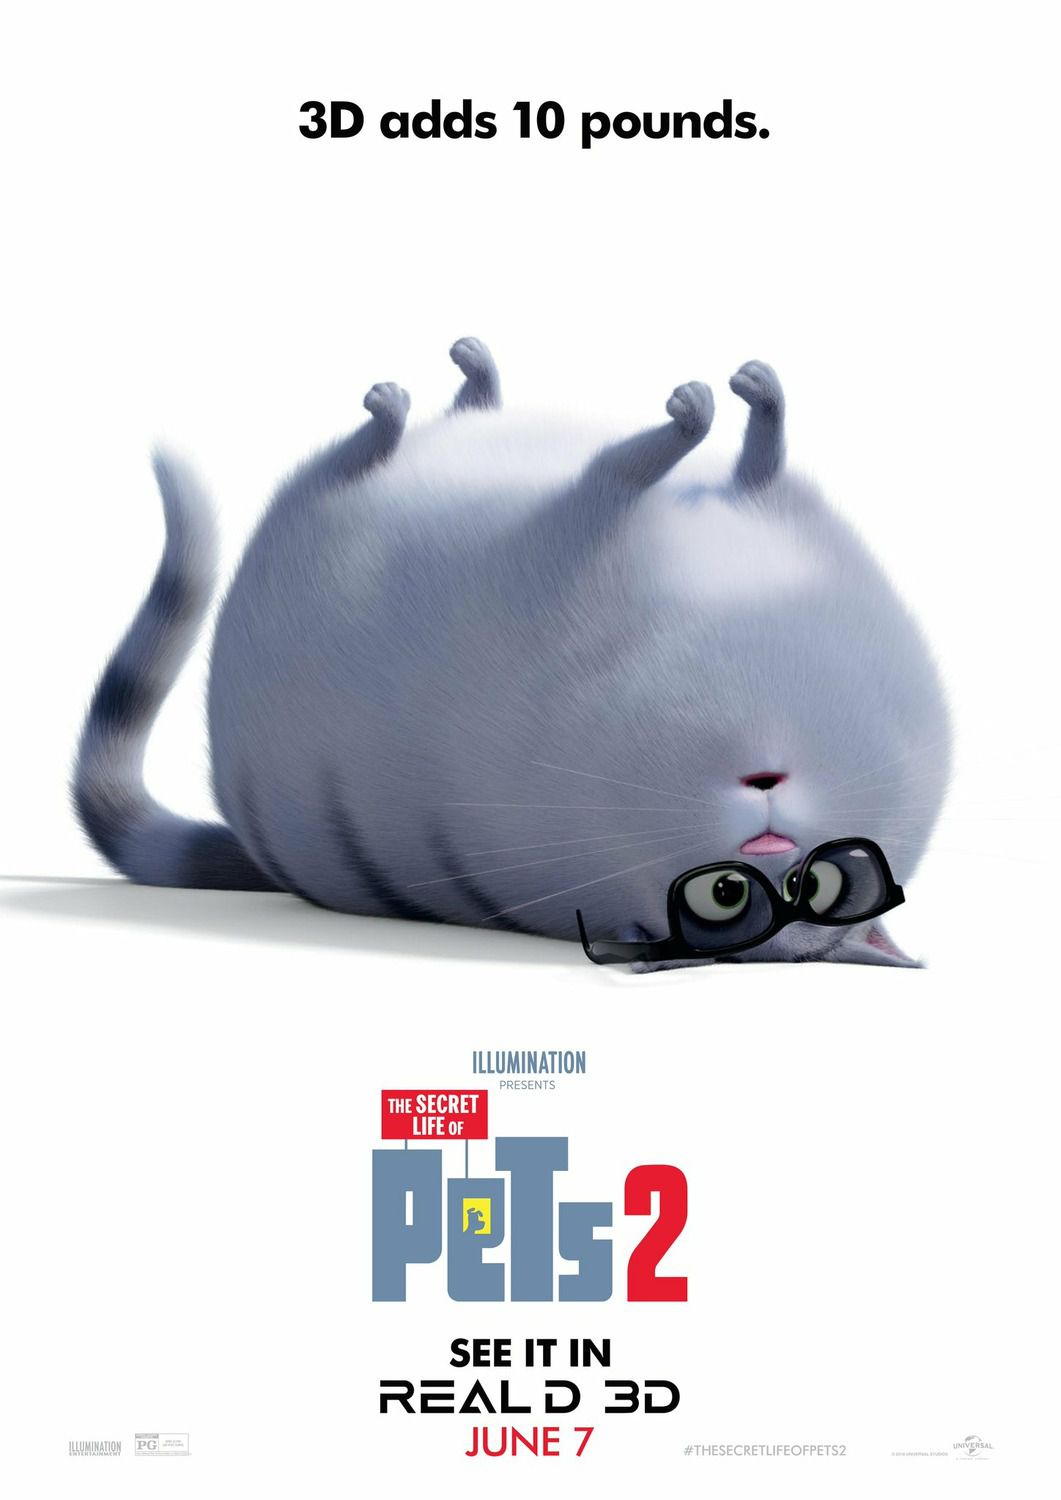 The Secret Life of Pets 2 2019 3D adds 10 pounds - poster